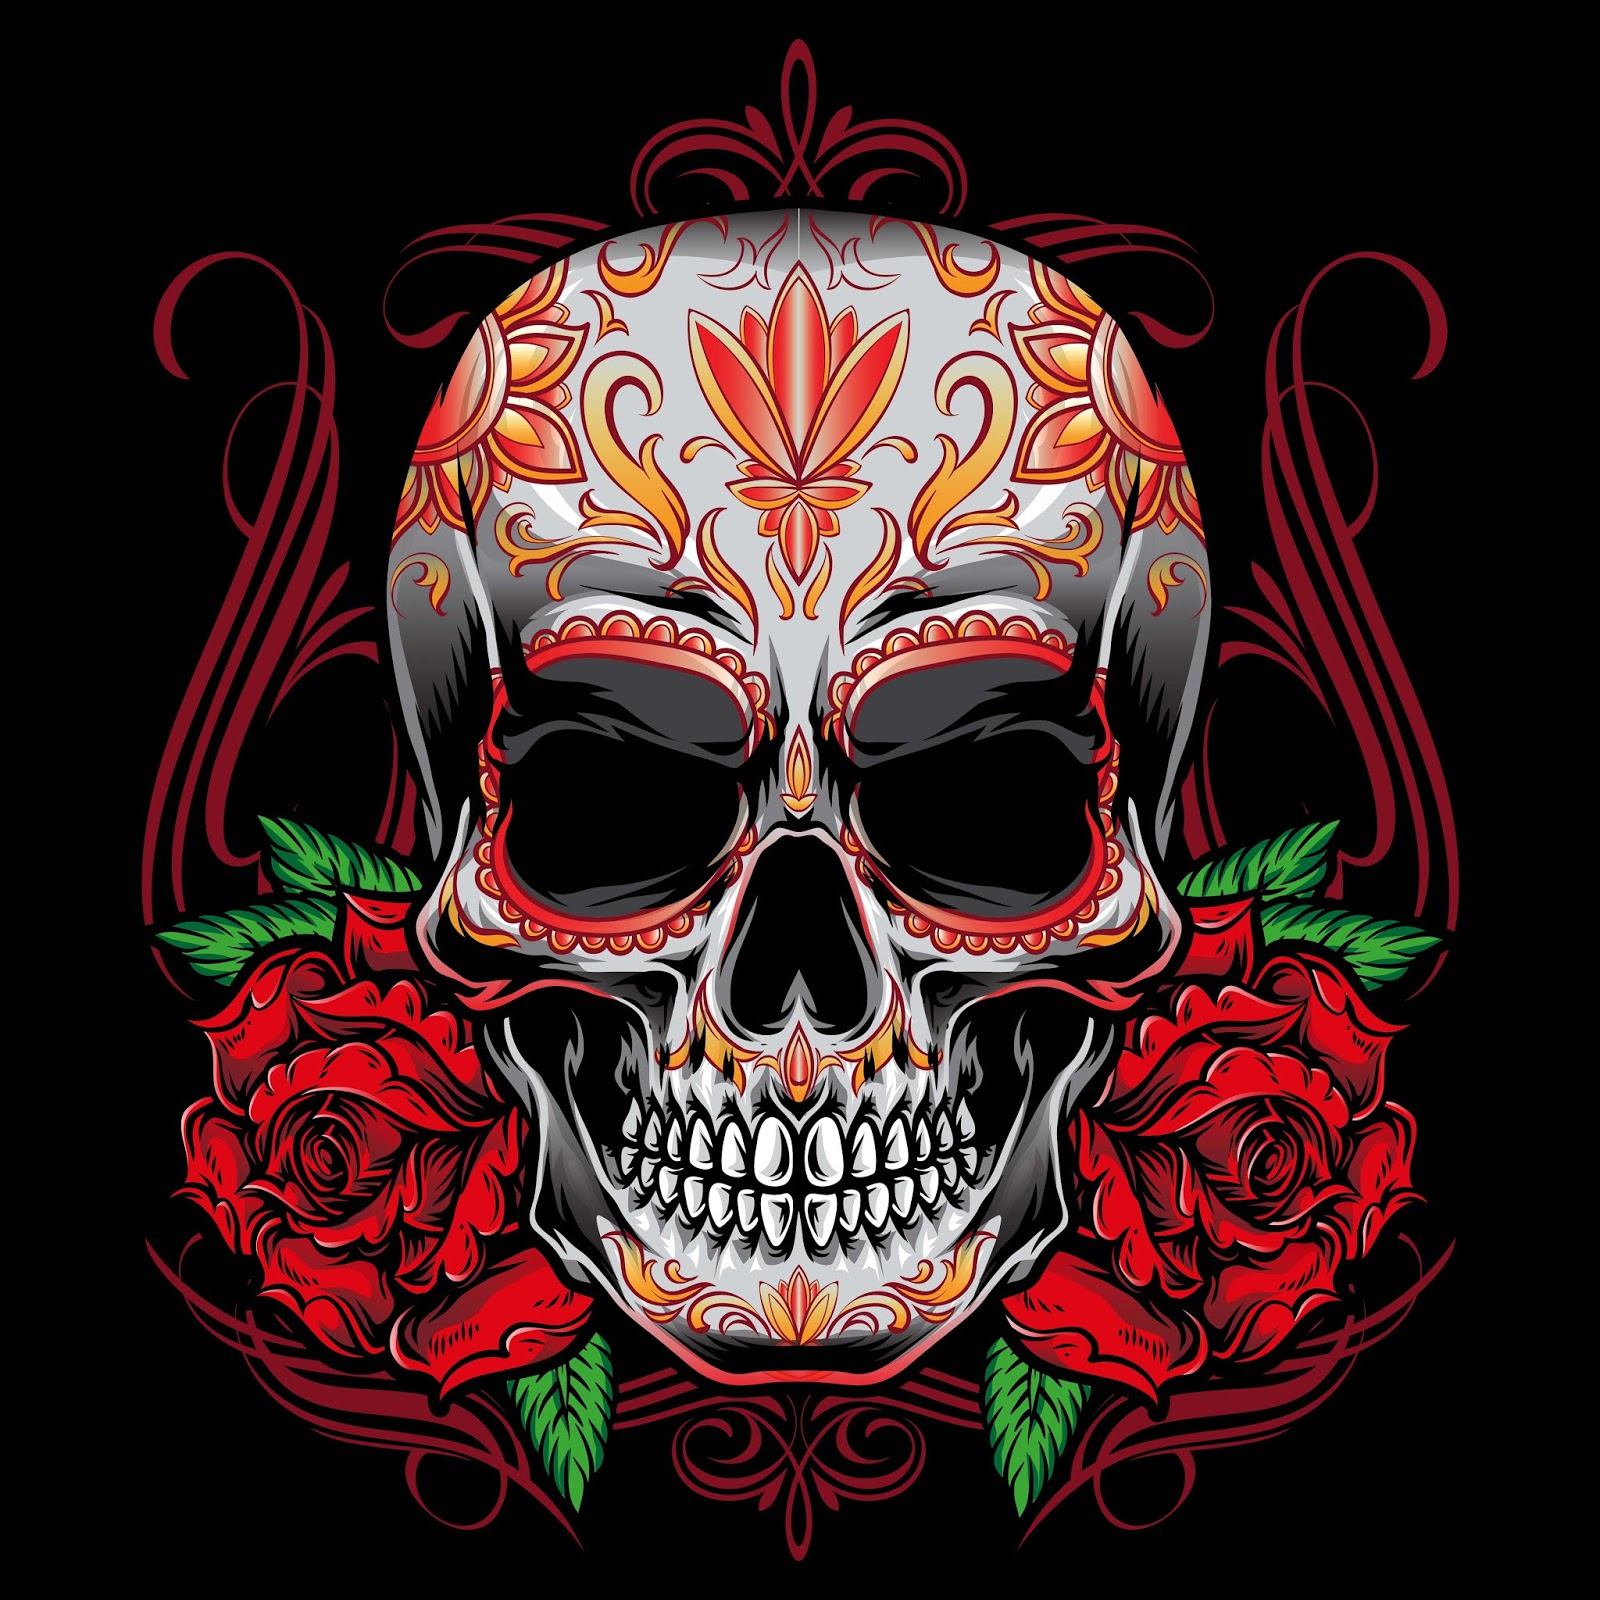 Sugarskull Vector With Roses Ornament Free Download Vector CDR, AI, EPS and PNG Formats